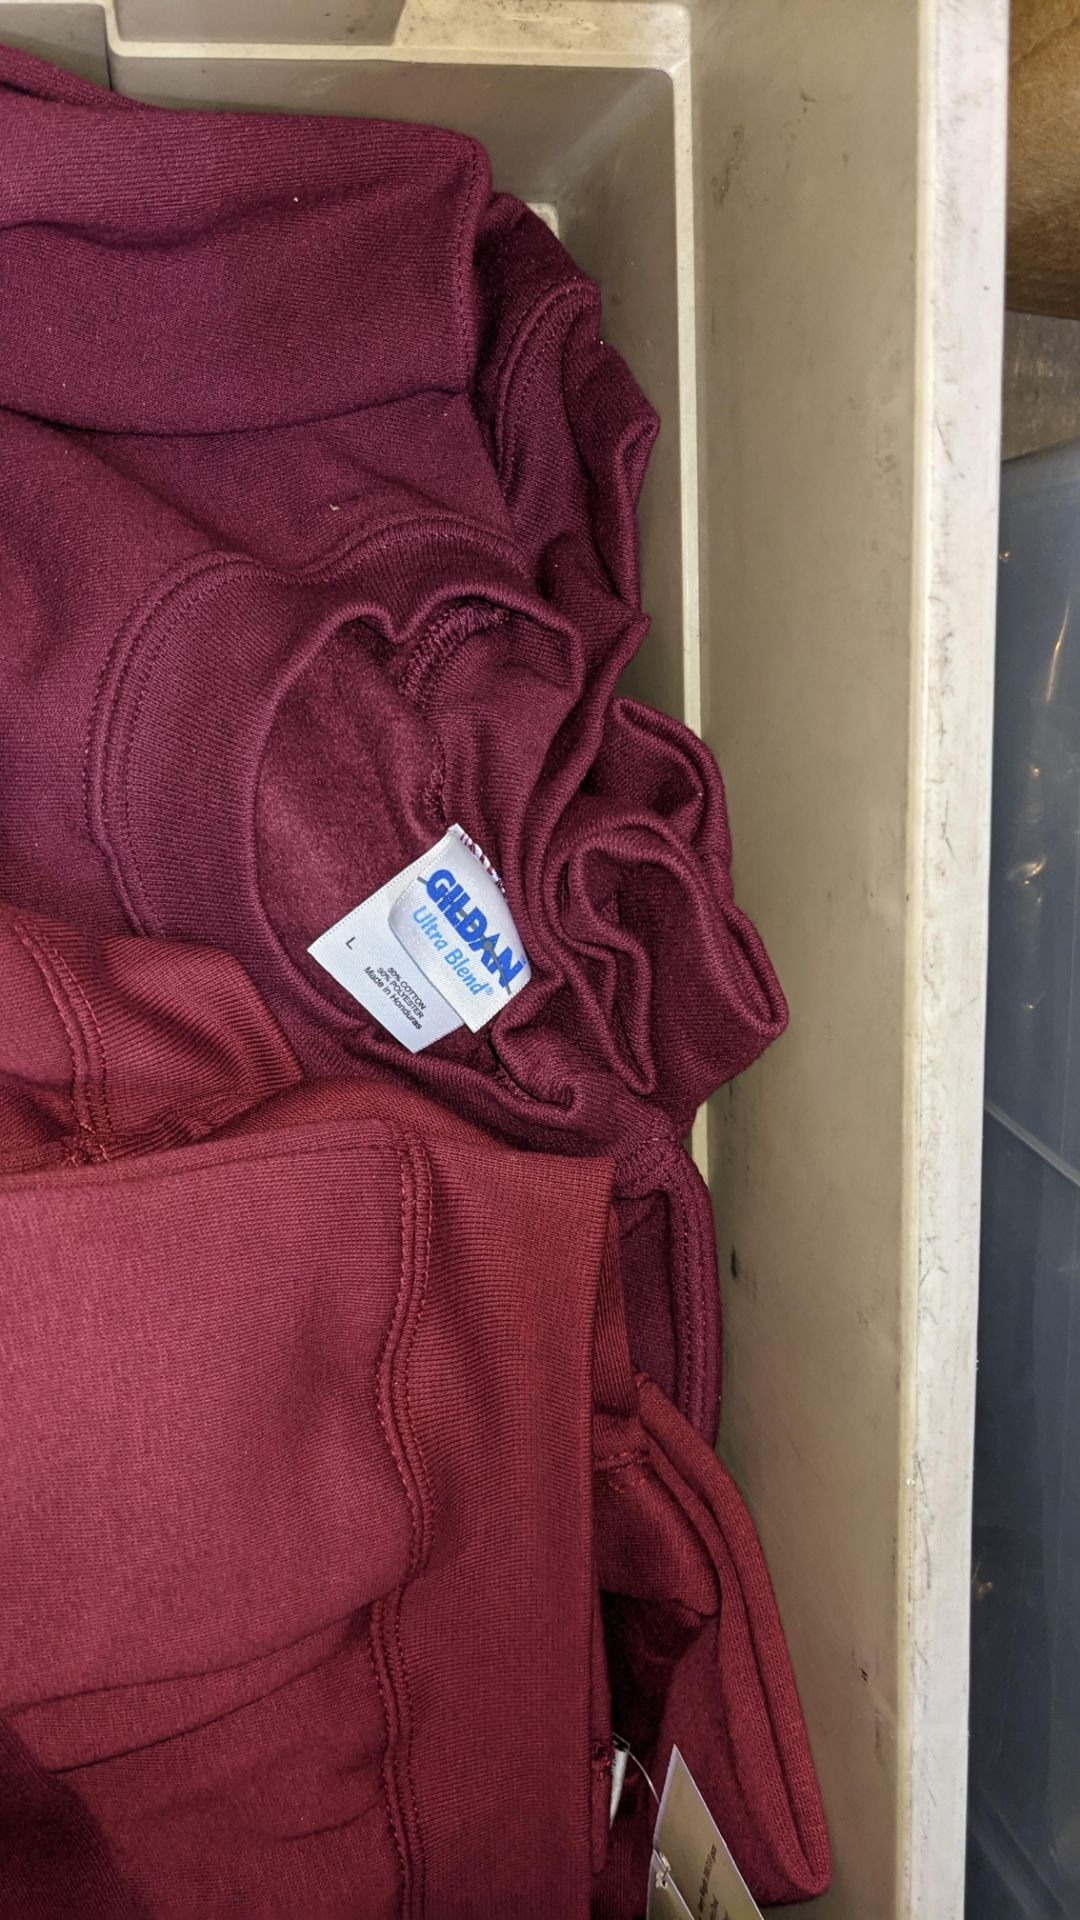 Approx 10 off assorted children's burgundy/red t-shirts & sweatshirts - the contents of 1 crate. NB - Image 4 of 4